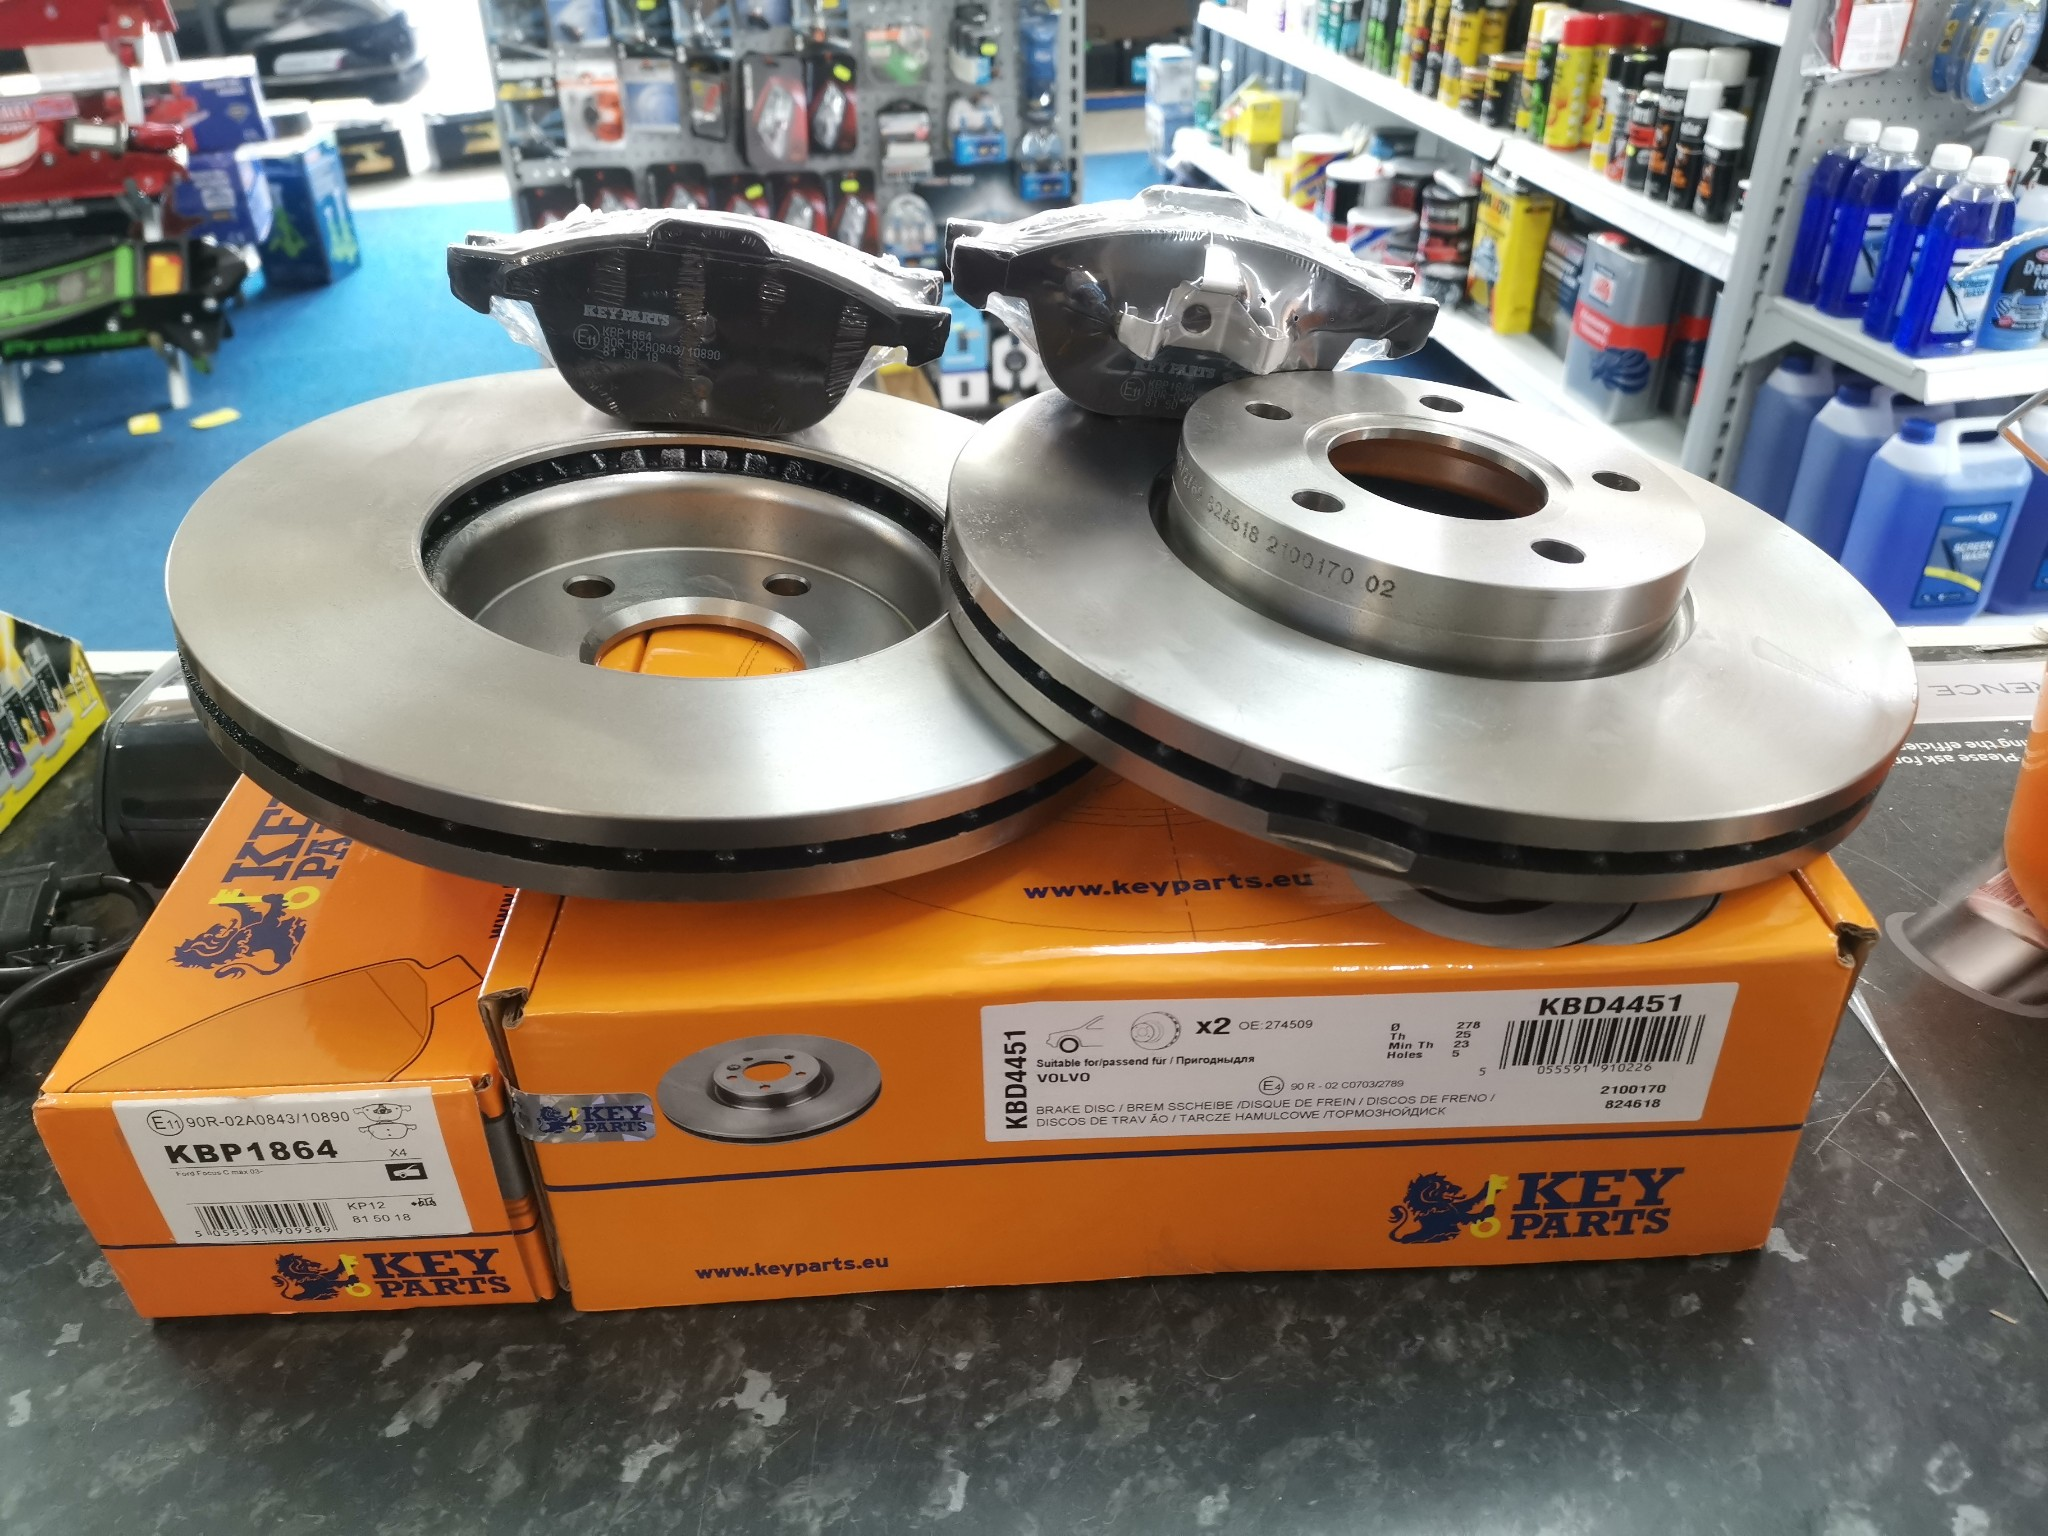 278mm Vented Ford Focus 05- C-Max Front Vented Brake Discs And Pads Fits